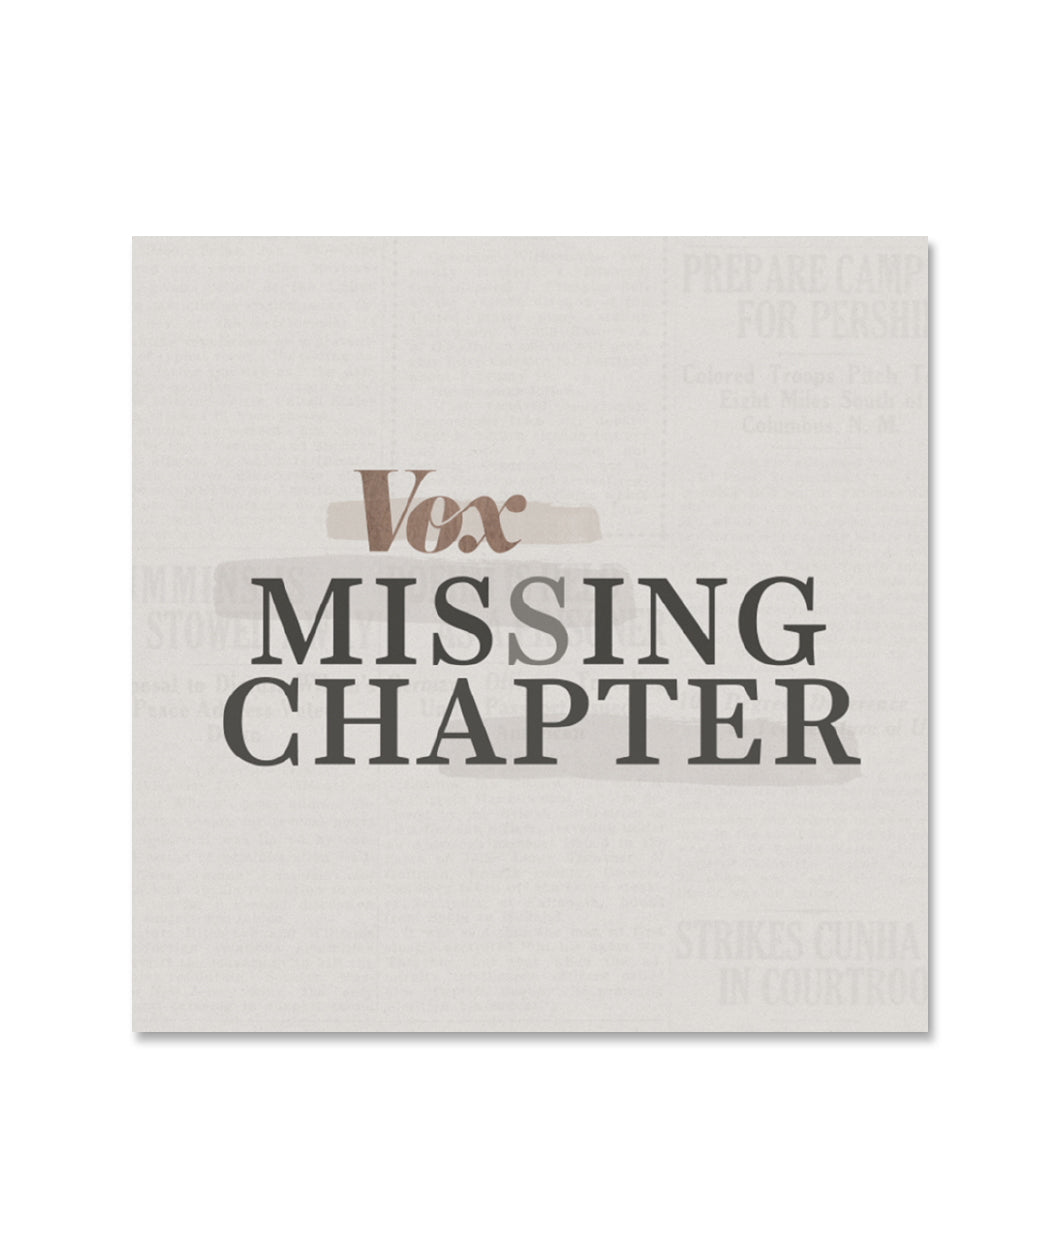 Vox Missing Chapter Sticker